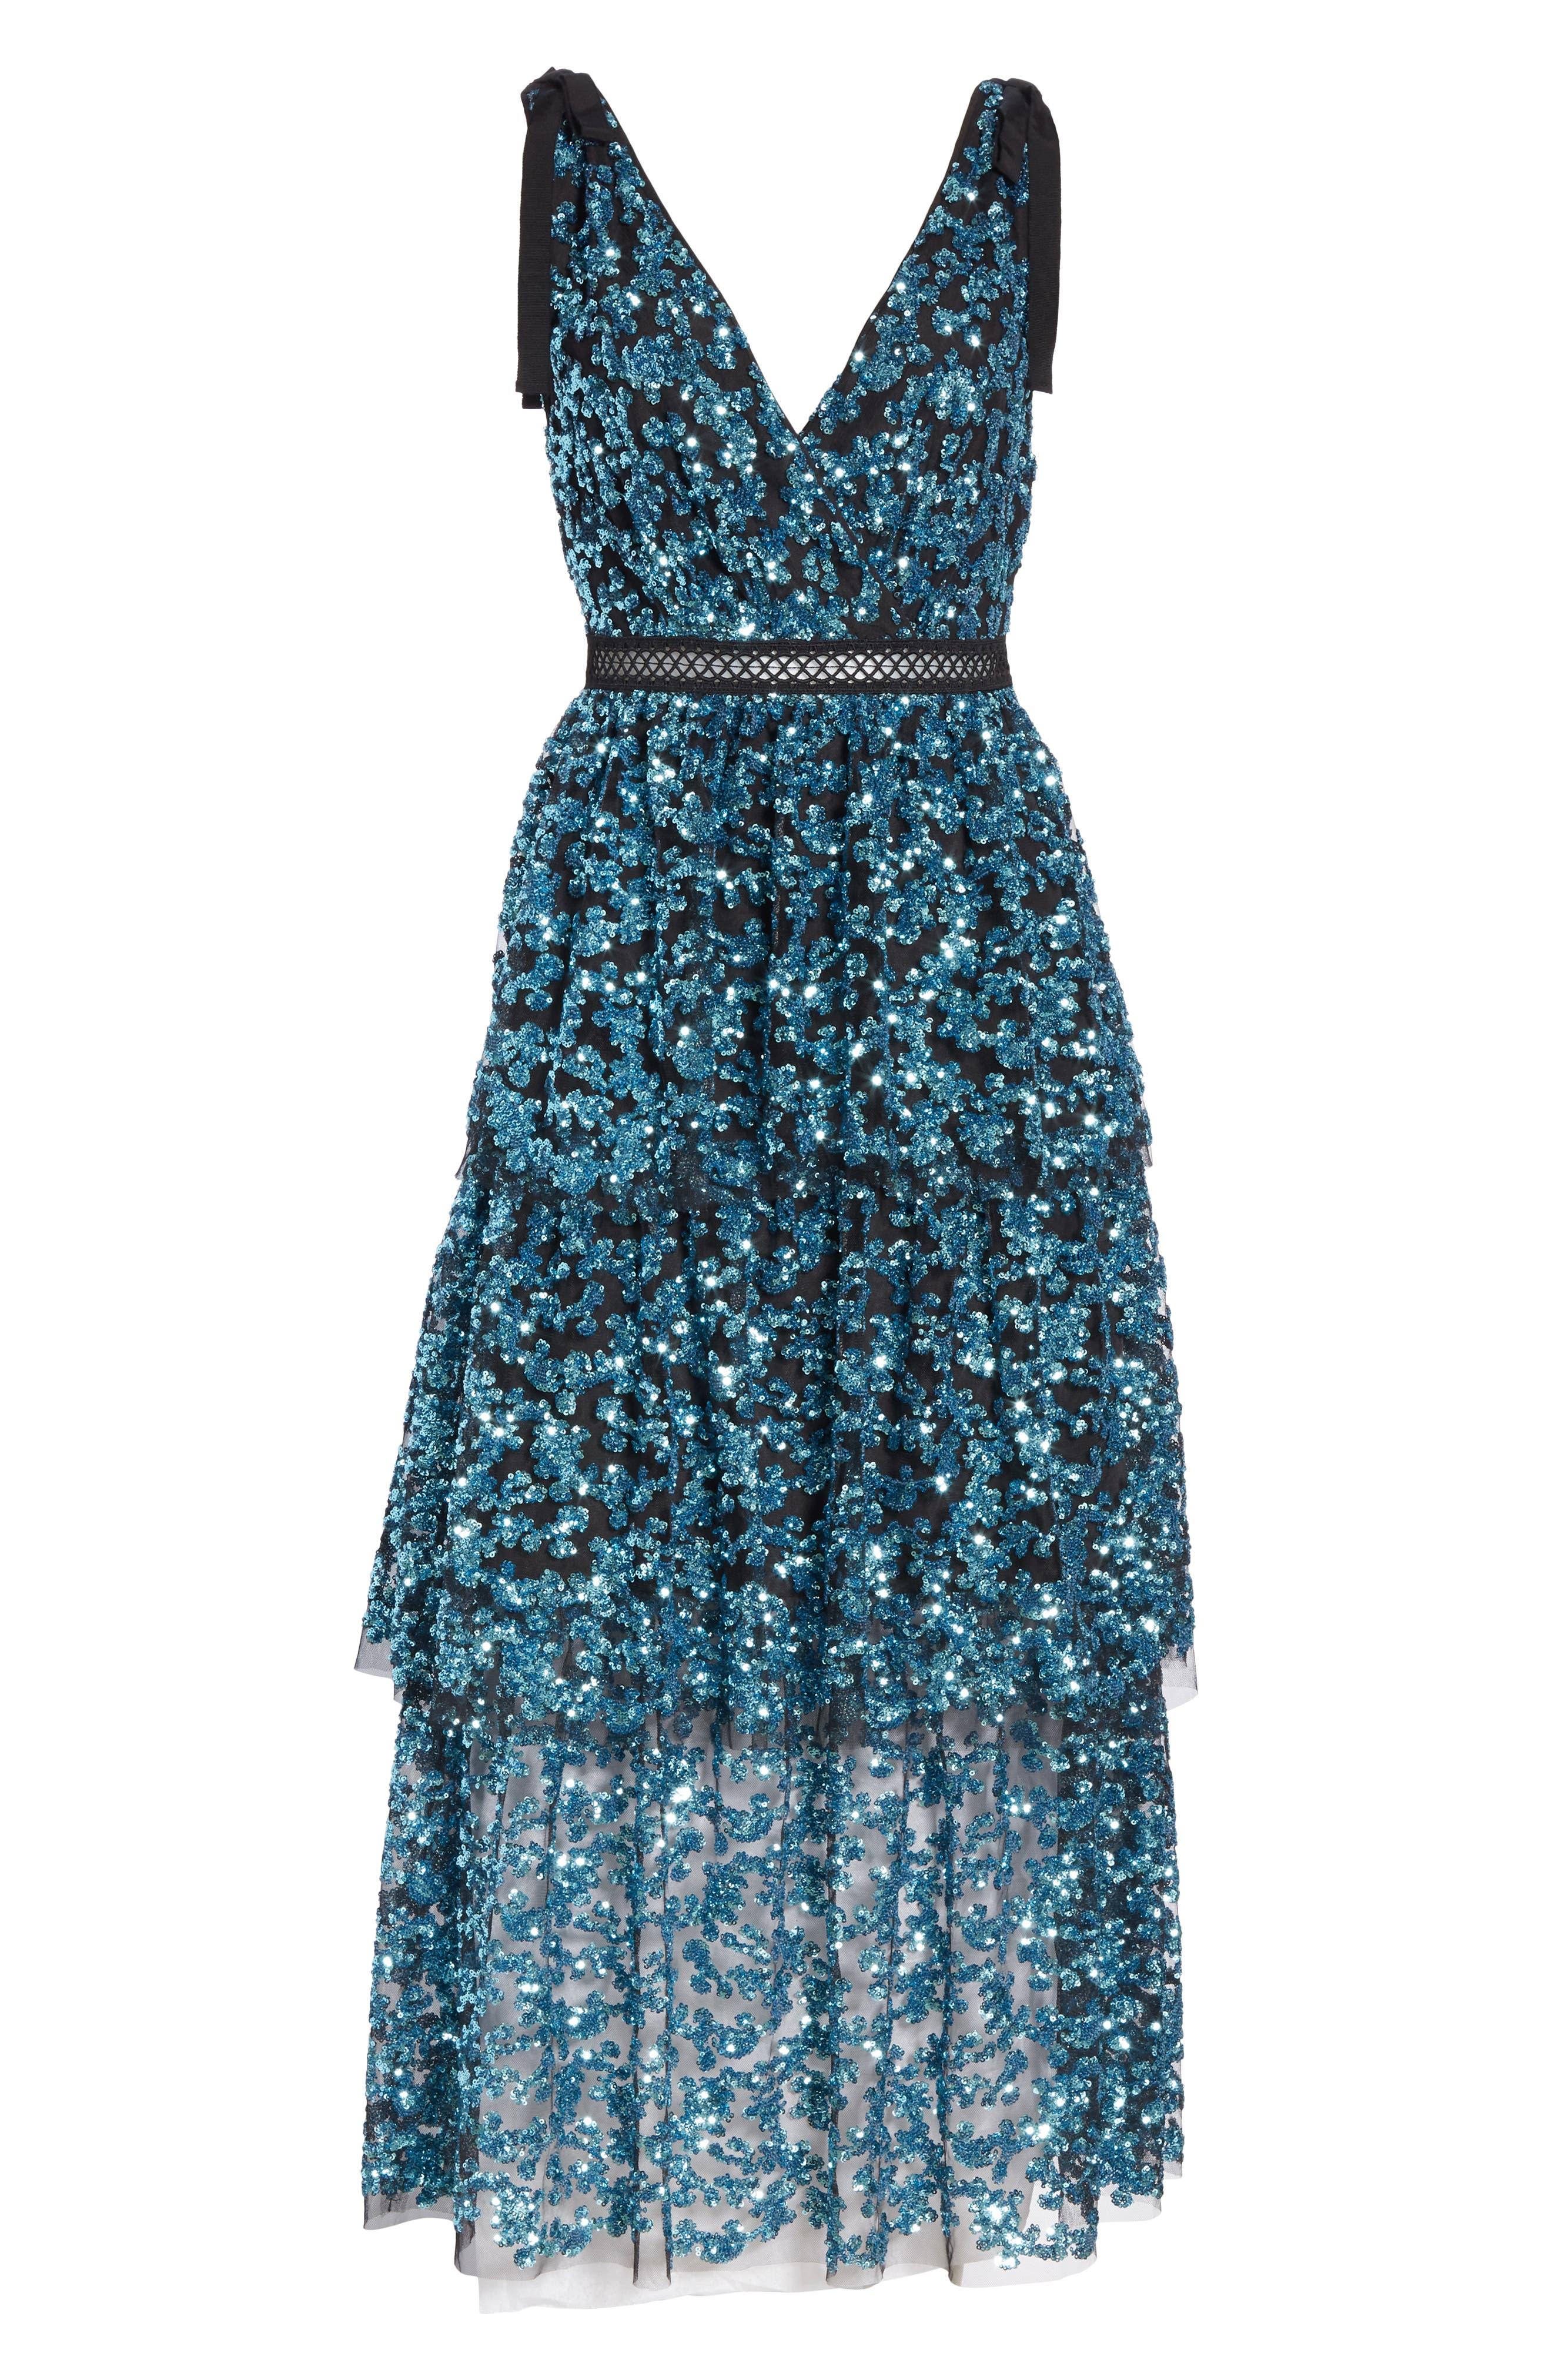 Tiered Sequined Midi Dress,                             Alternate thumbnail 6, color,                             BLUE